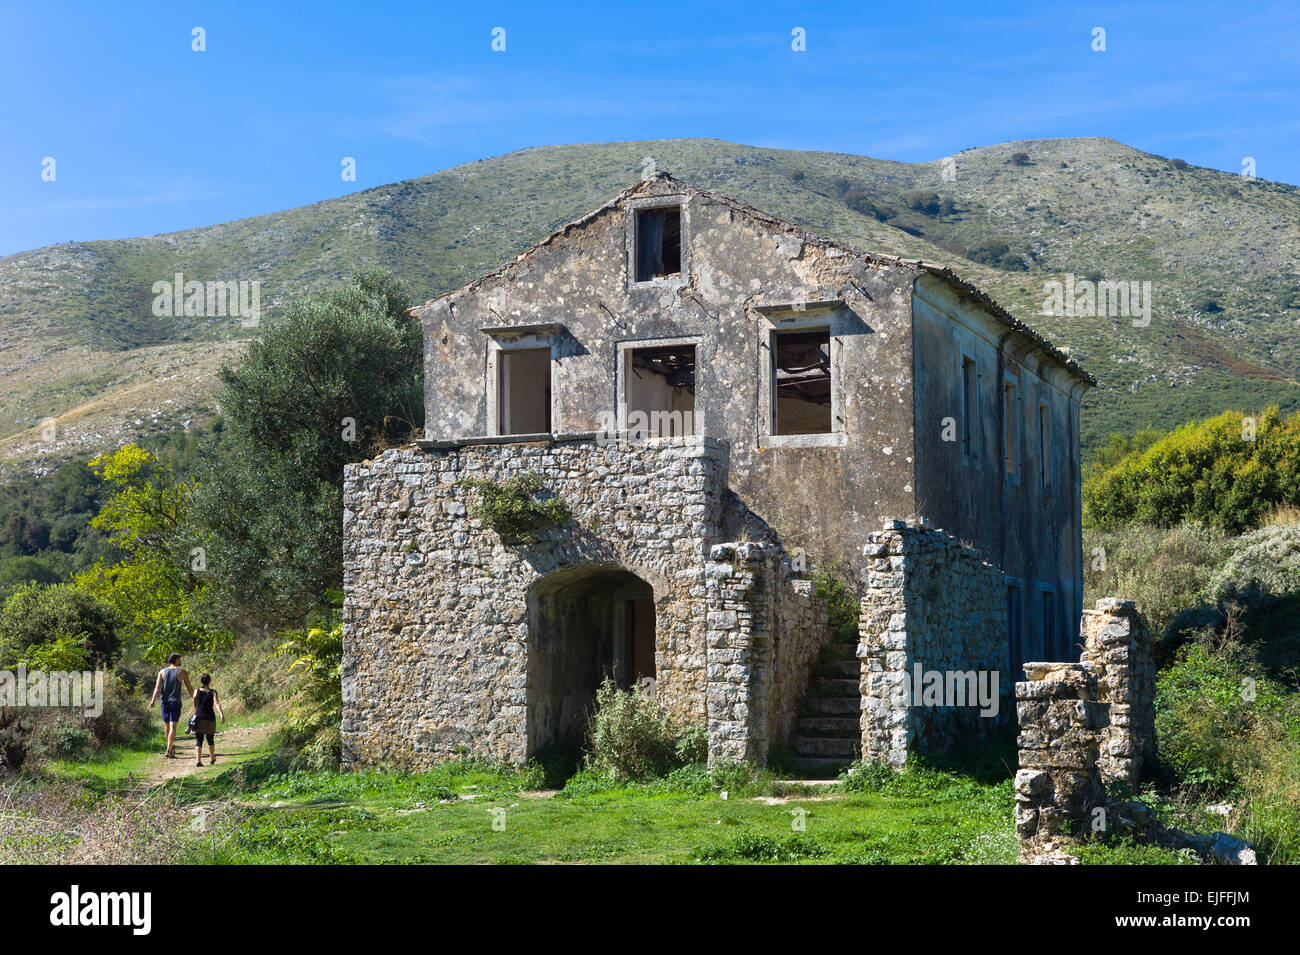 Tourists visiting Skordilis Mansion house ruin in oldest village of Corfu - ancient Old Perithia - Palea Perithea, - Stock Image